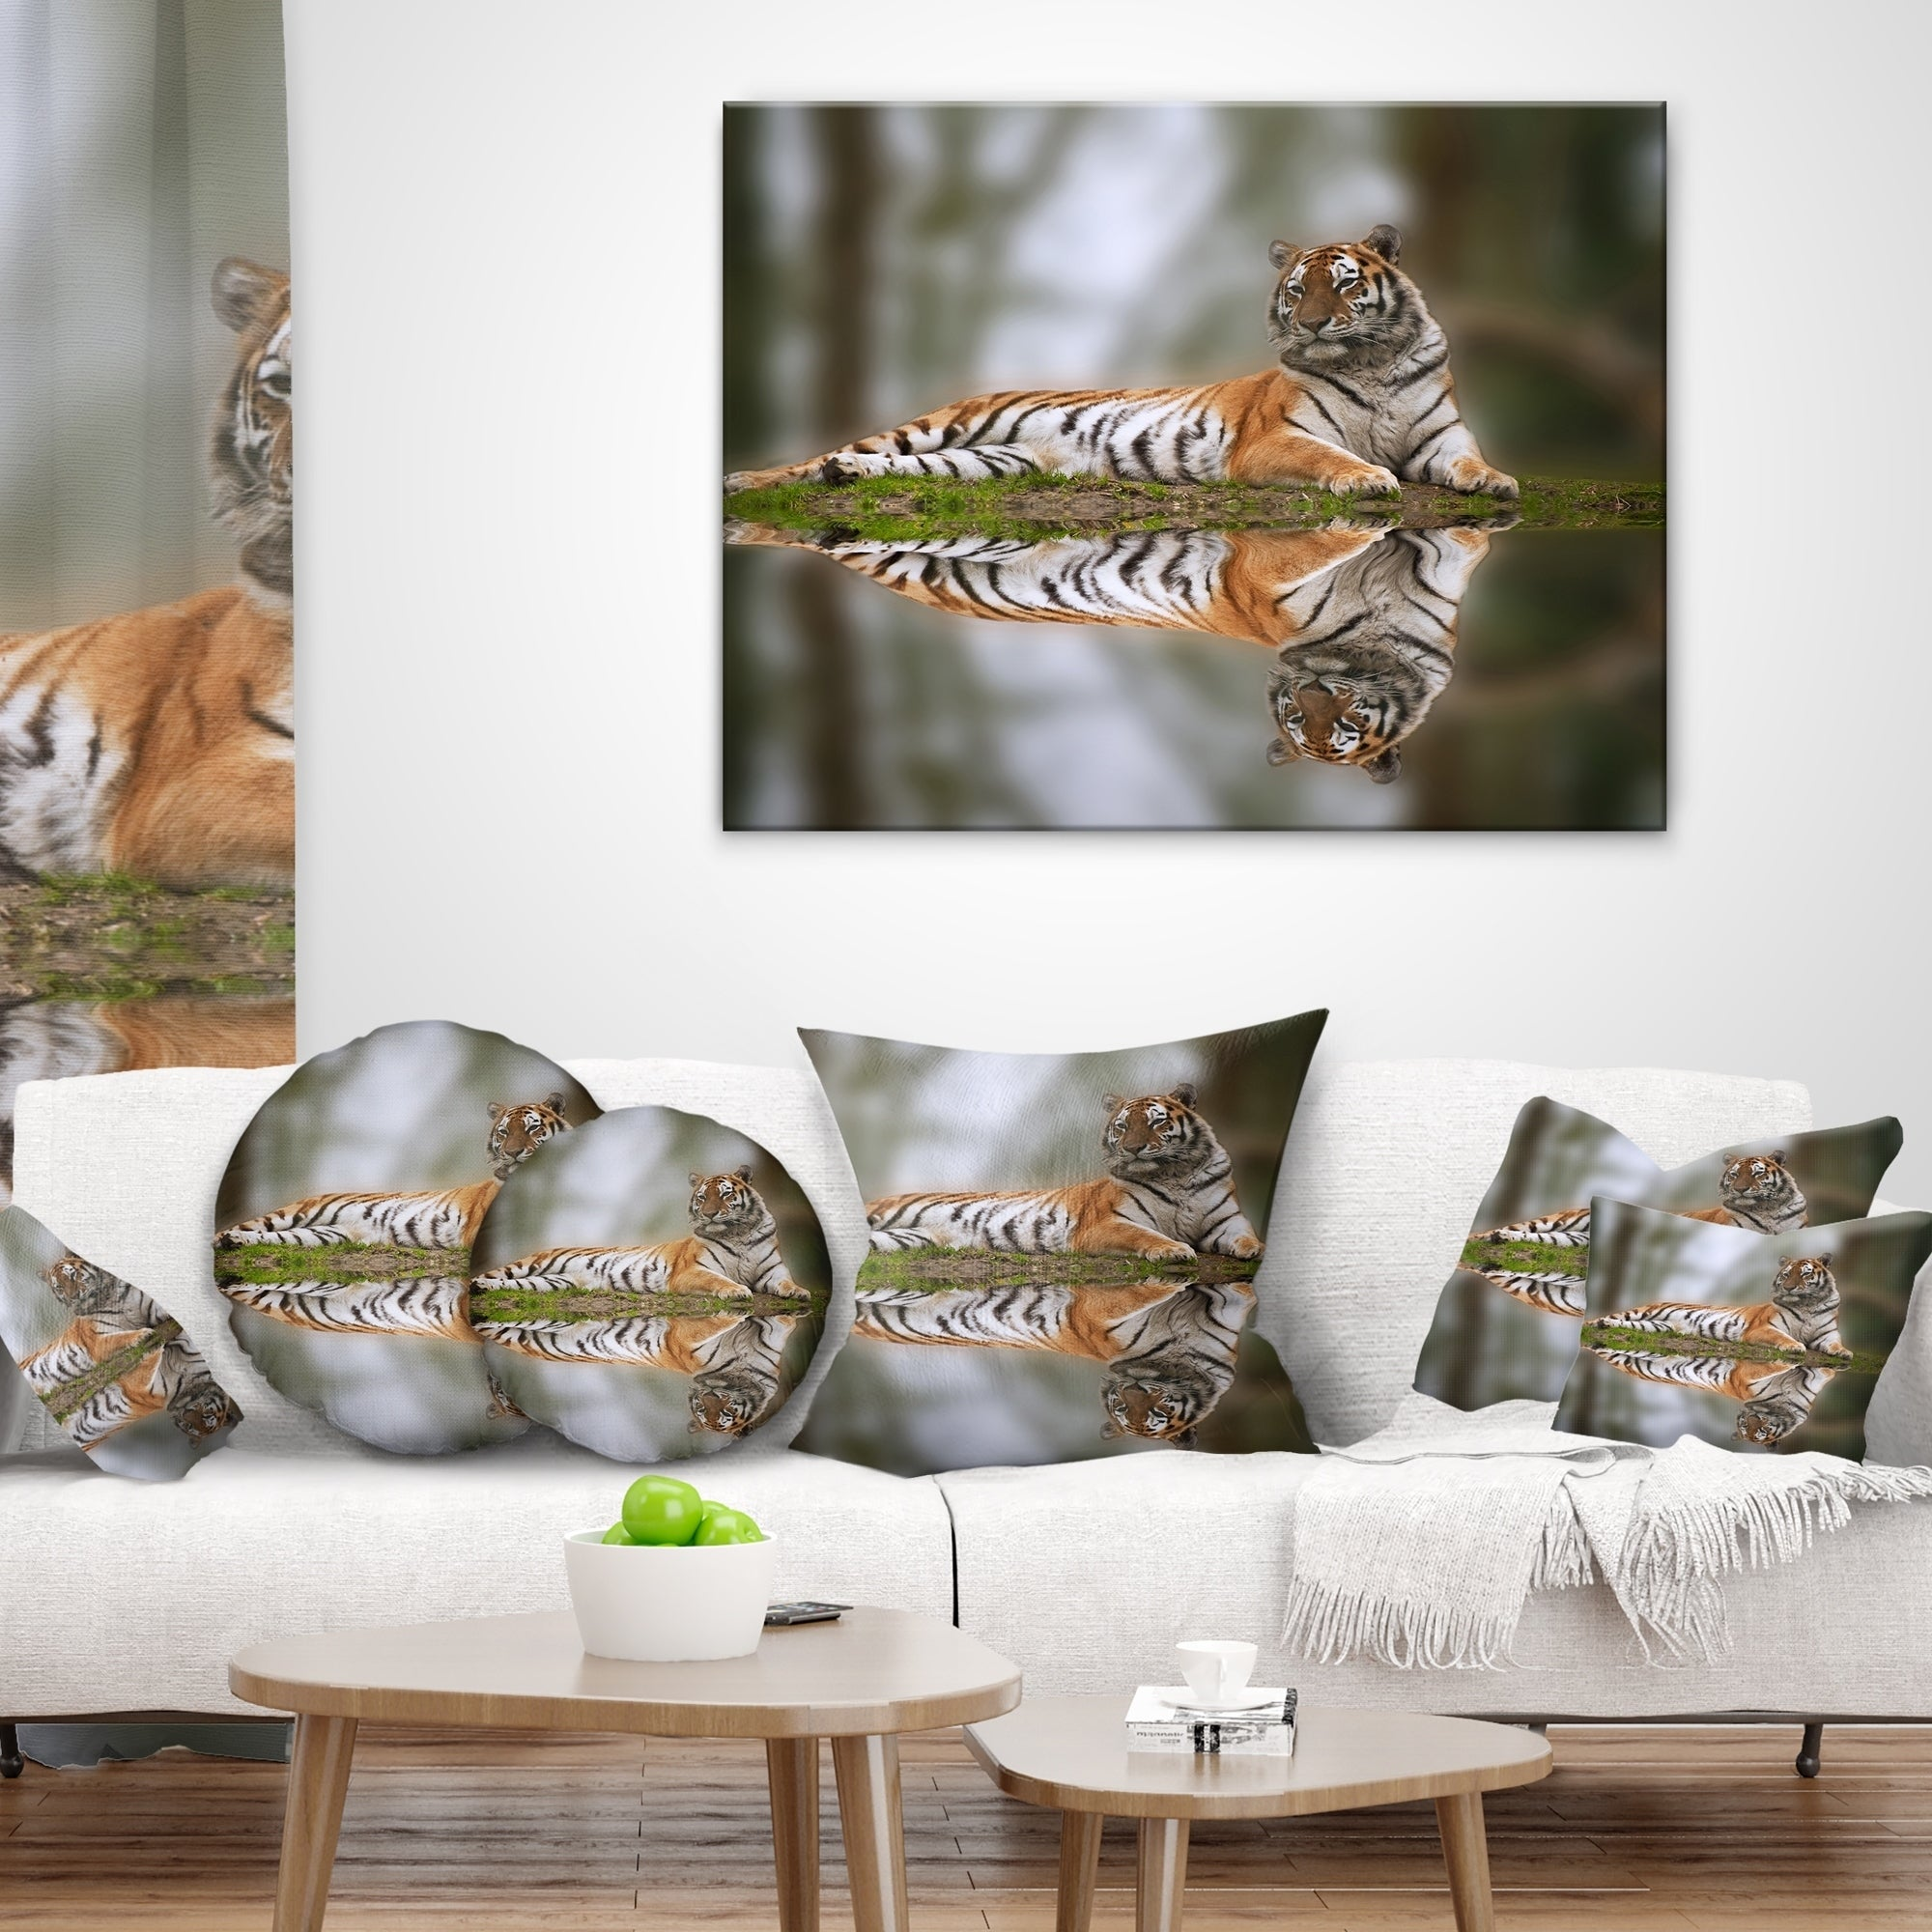 Designart Tiger Reflecting In Water Animal Throw Pillow Overstock 20948854